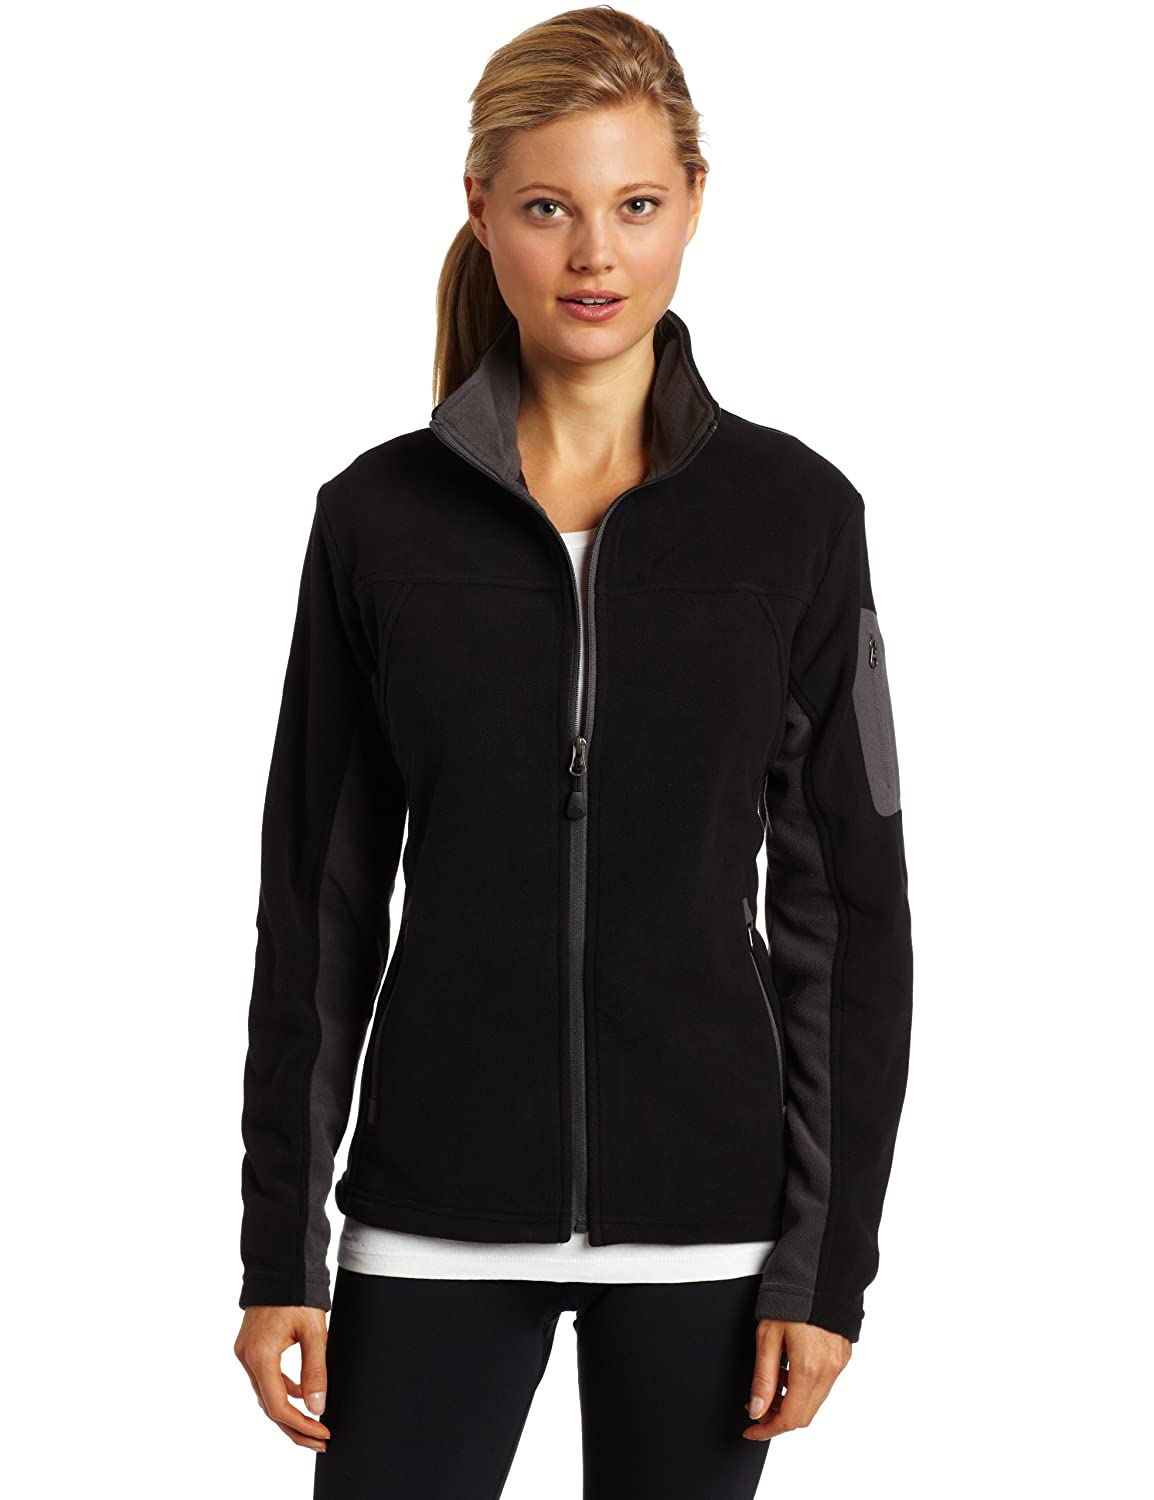 Amazon.com: Colorado Clothing Full Zip Light Fleece Jacket: Sports ...